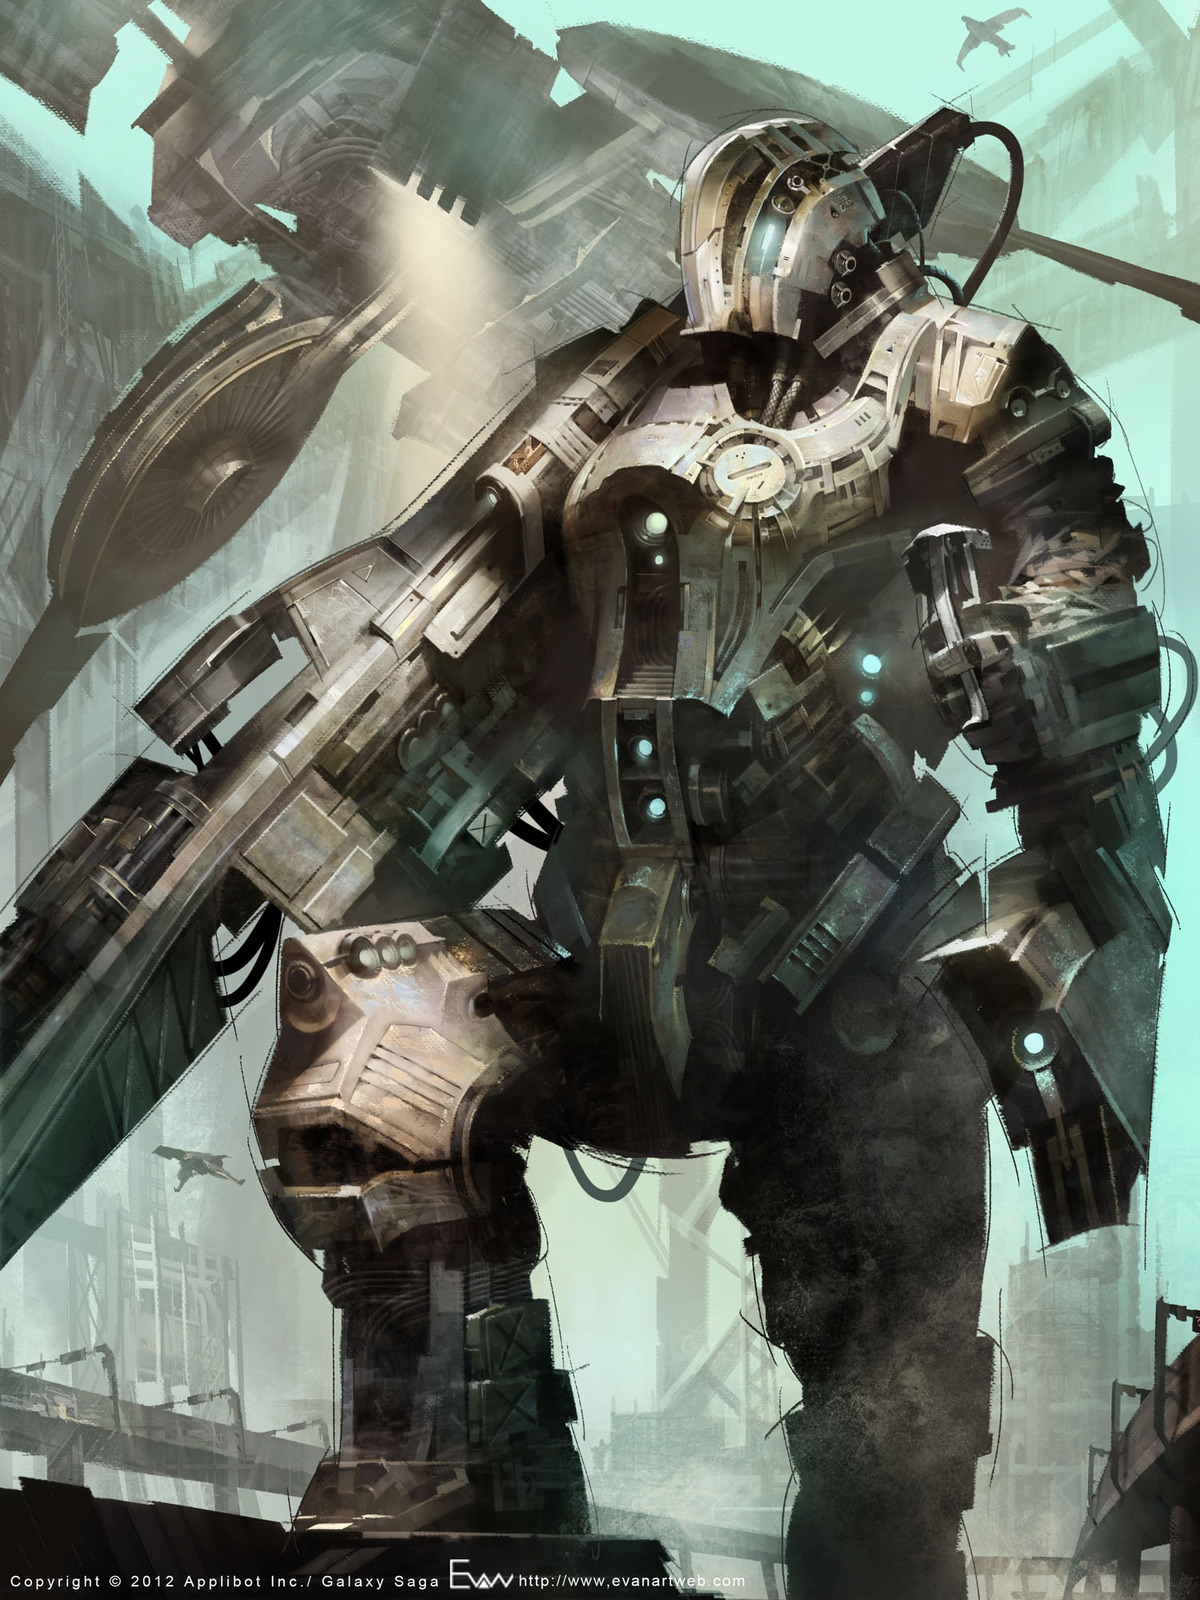 Sci Fi By Jd Clarke Science Fiction Artwork That Sparks